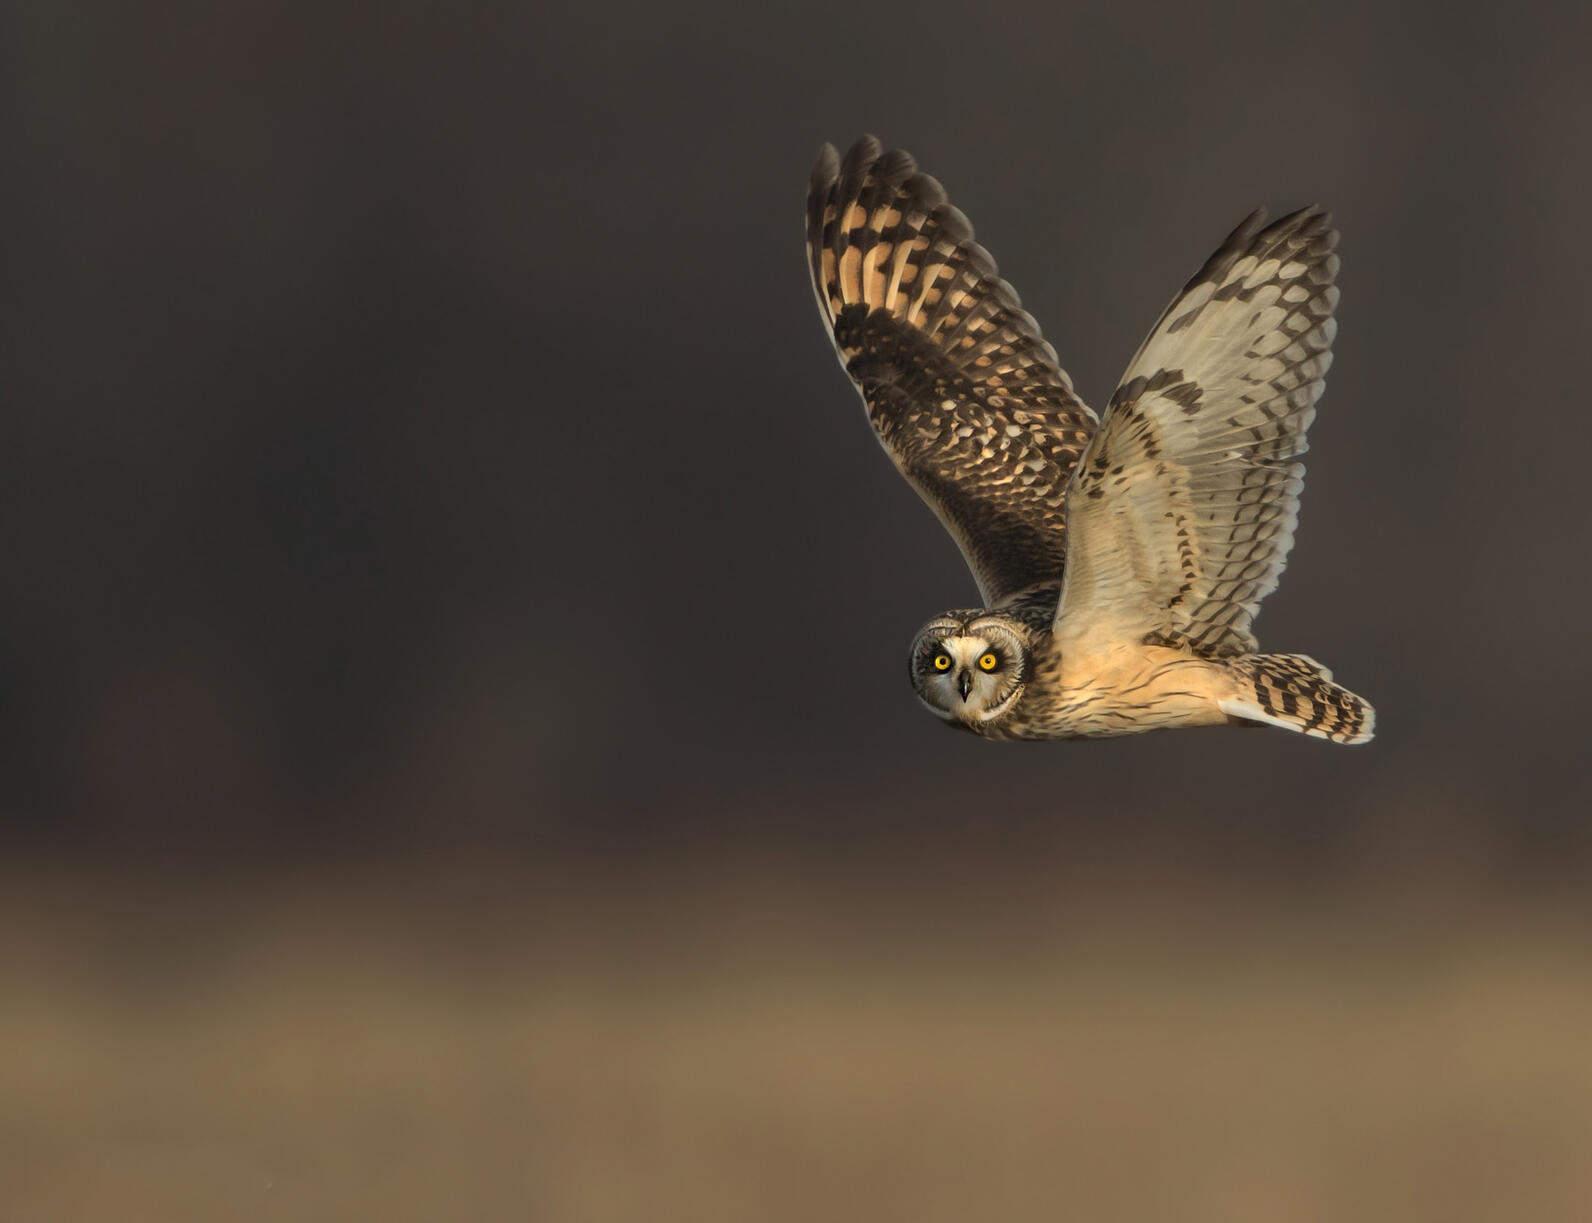 A Short-eared Owl flies close to the ground.